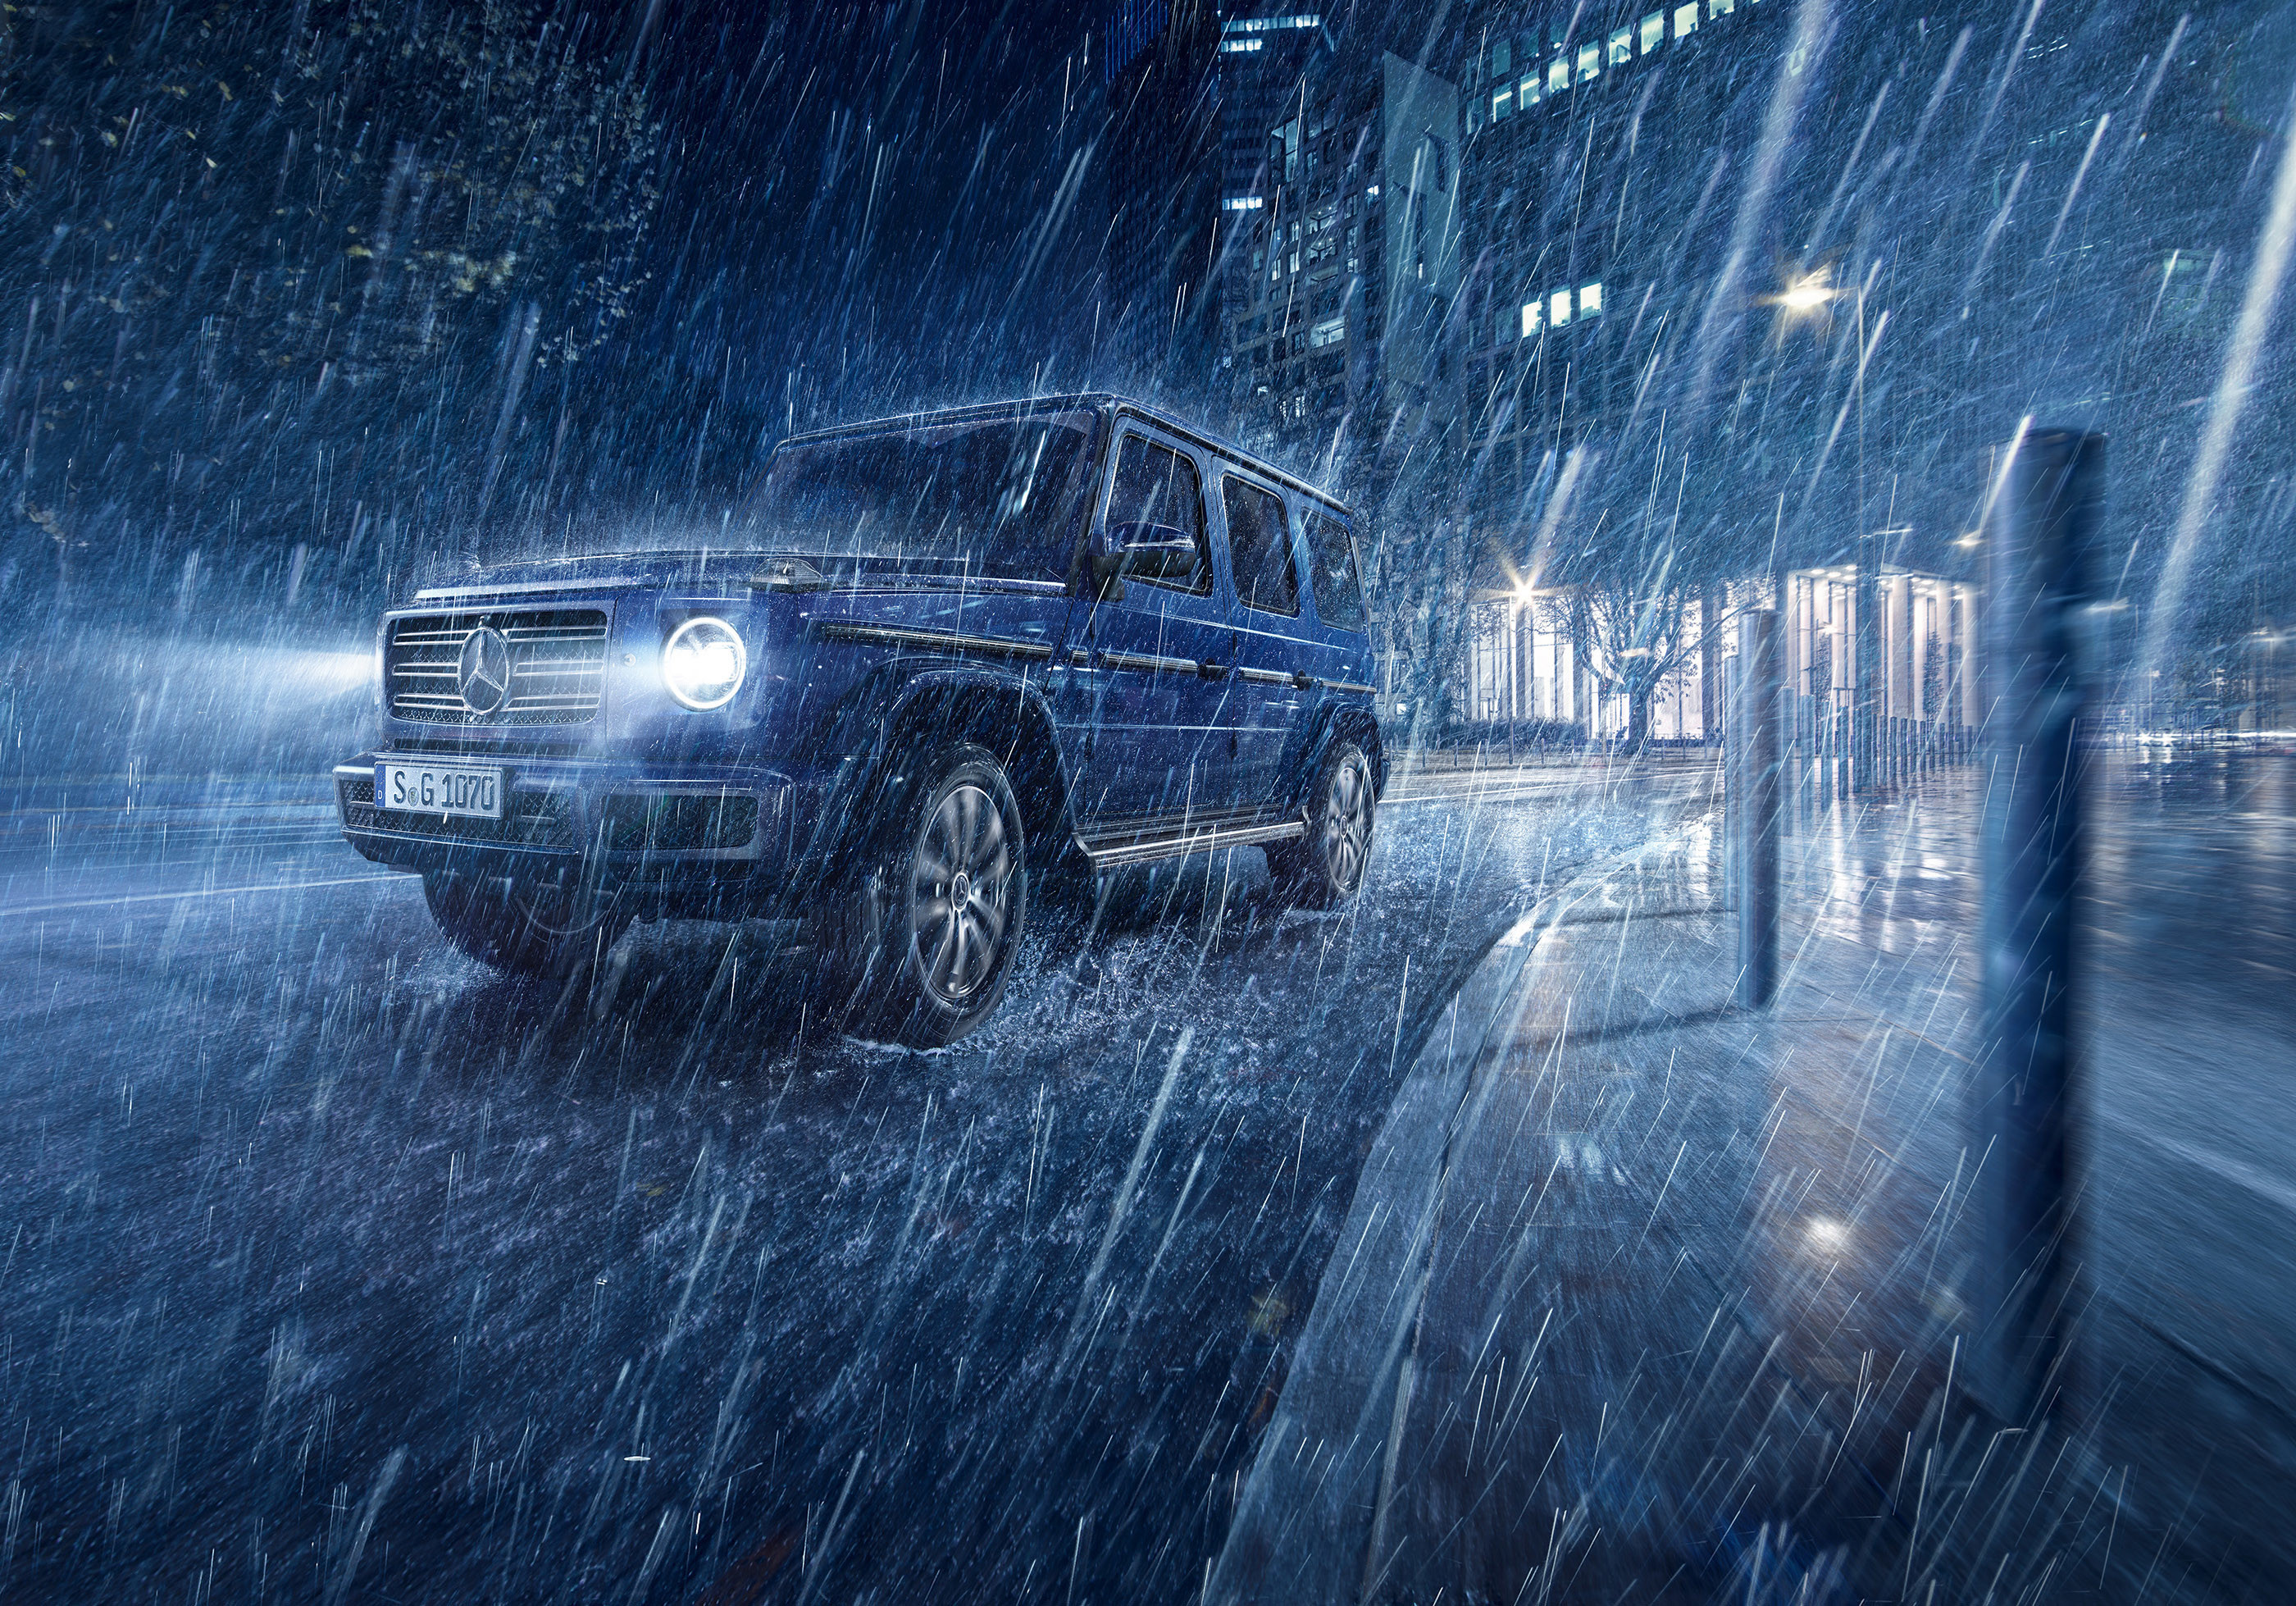 Digital Photography: 2019 Mercedes G-Class by Markus Wendler